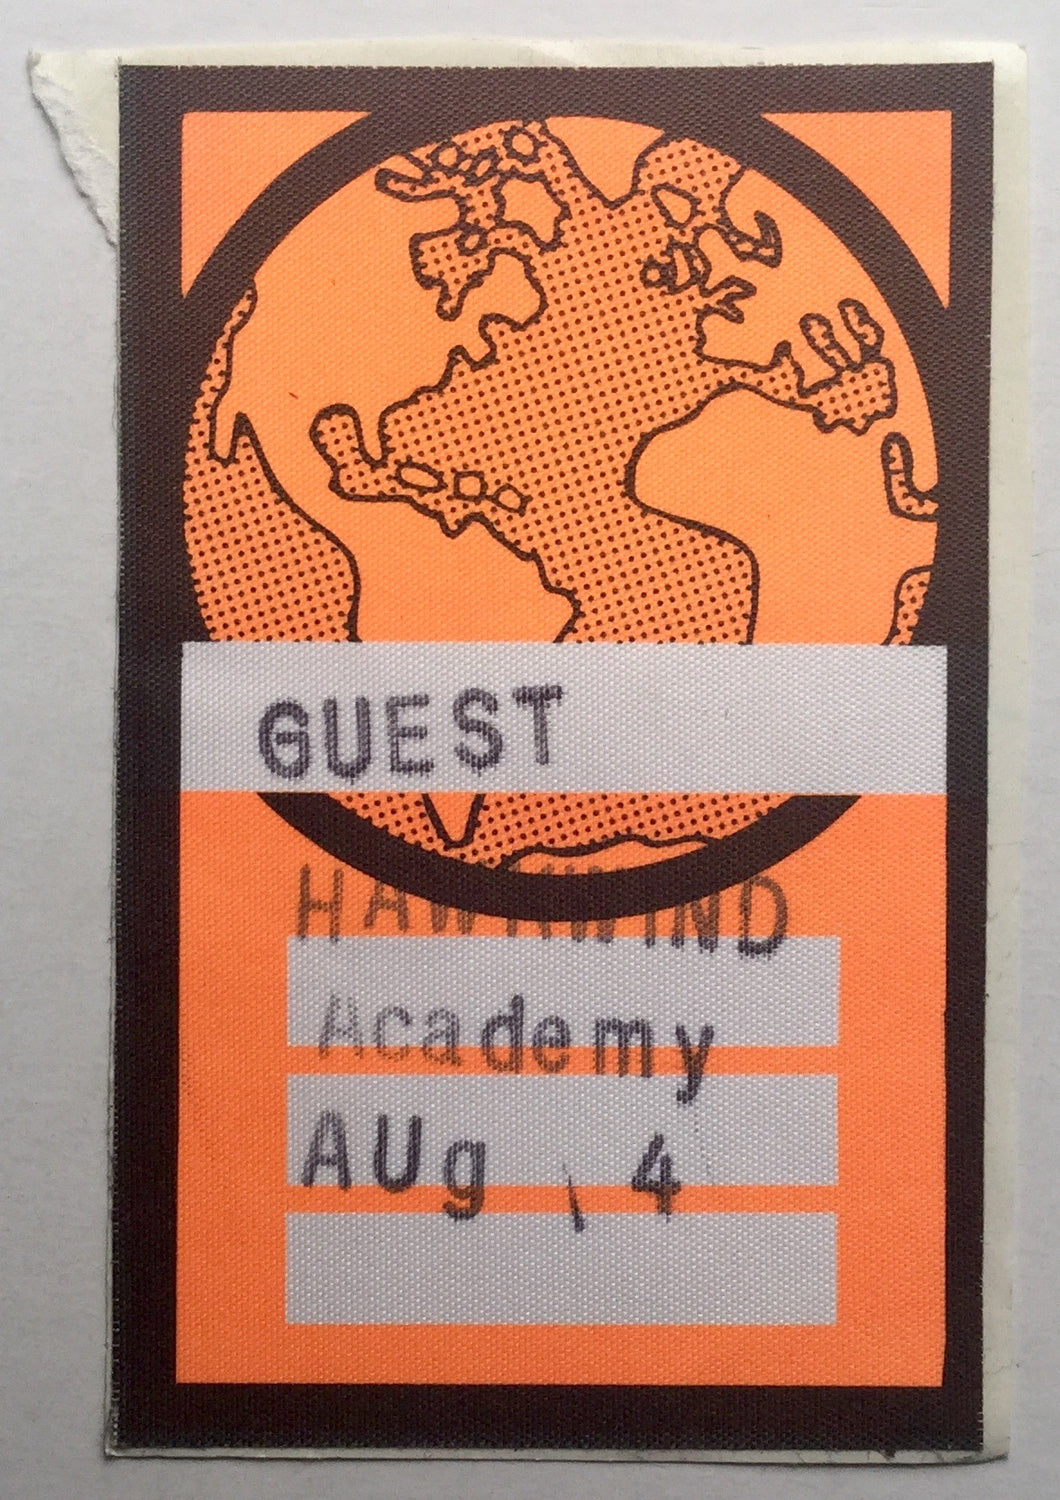 Hawkwind Orange Unused Concert Backstage Pass Ticket Brixton Academy London 14th Aug 1993